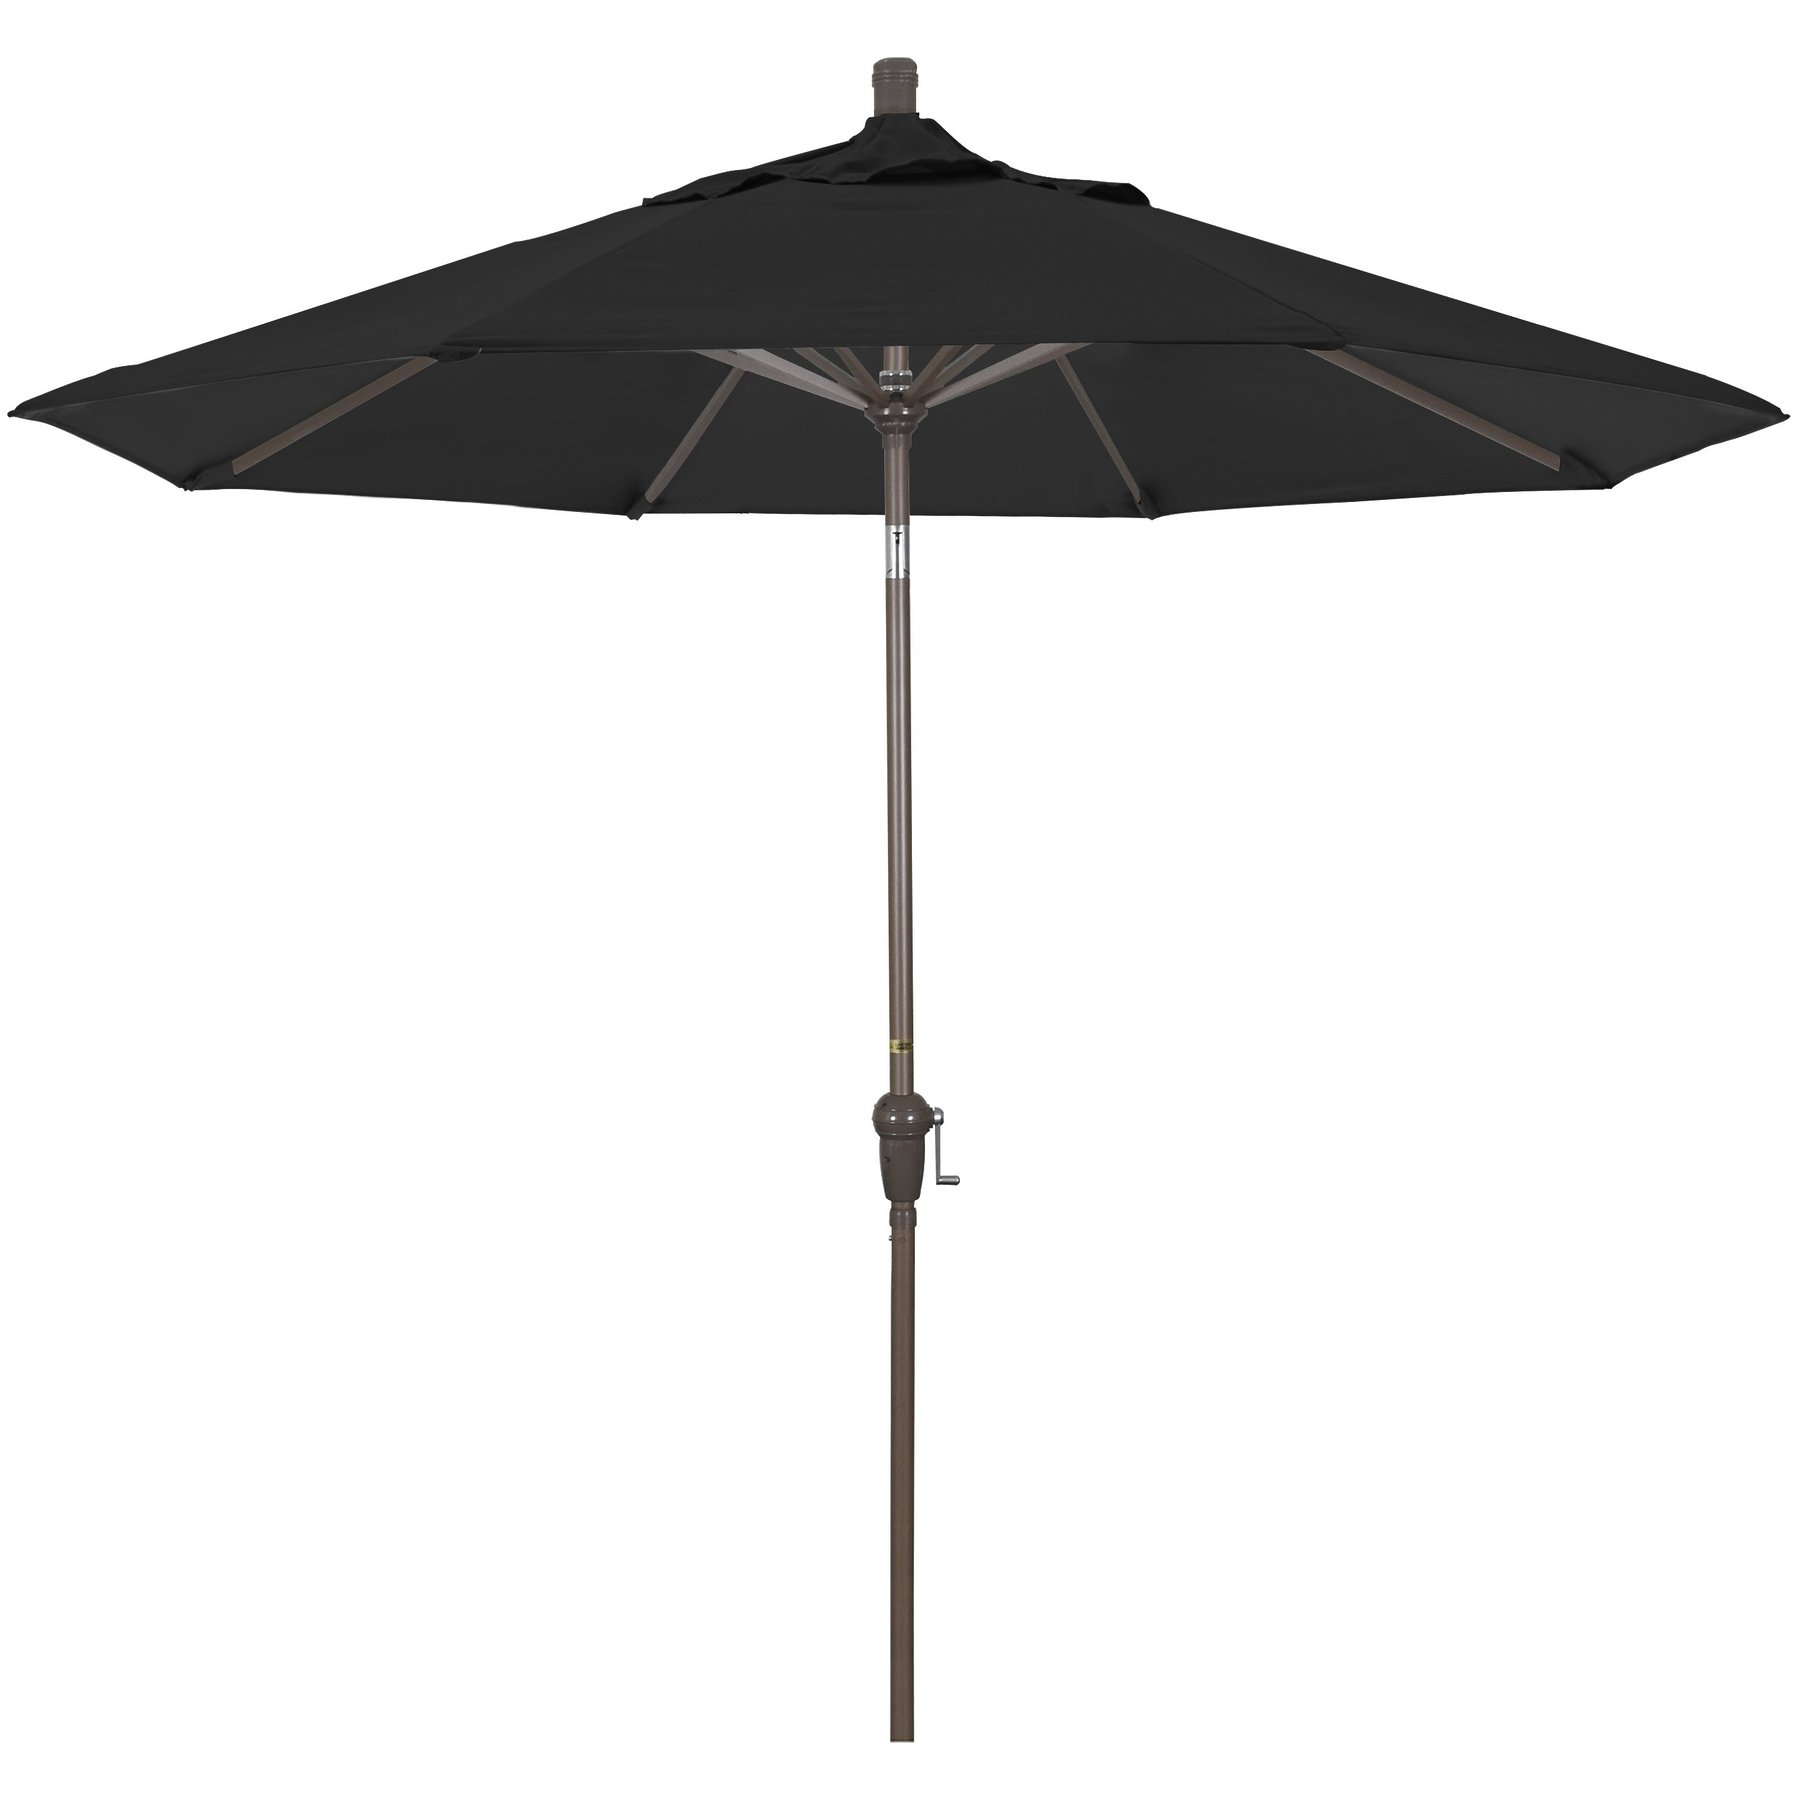 9' Market Umbrella Fabric: Pacifica Black, Frame Finish: Champagne SDAU908900-SA08